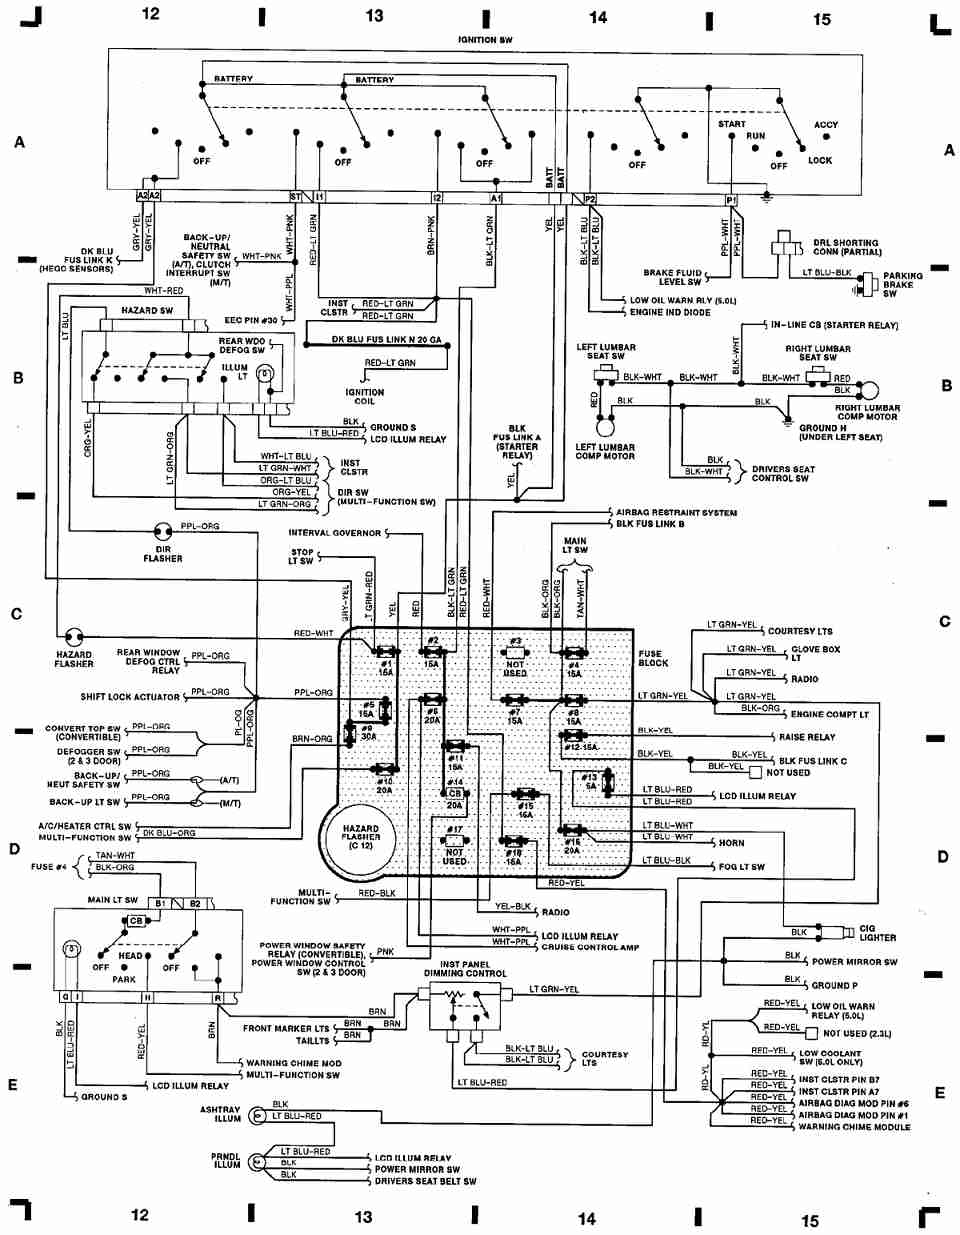 95 mustang gt alternator wiring schematic